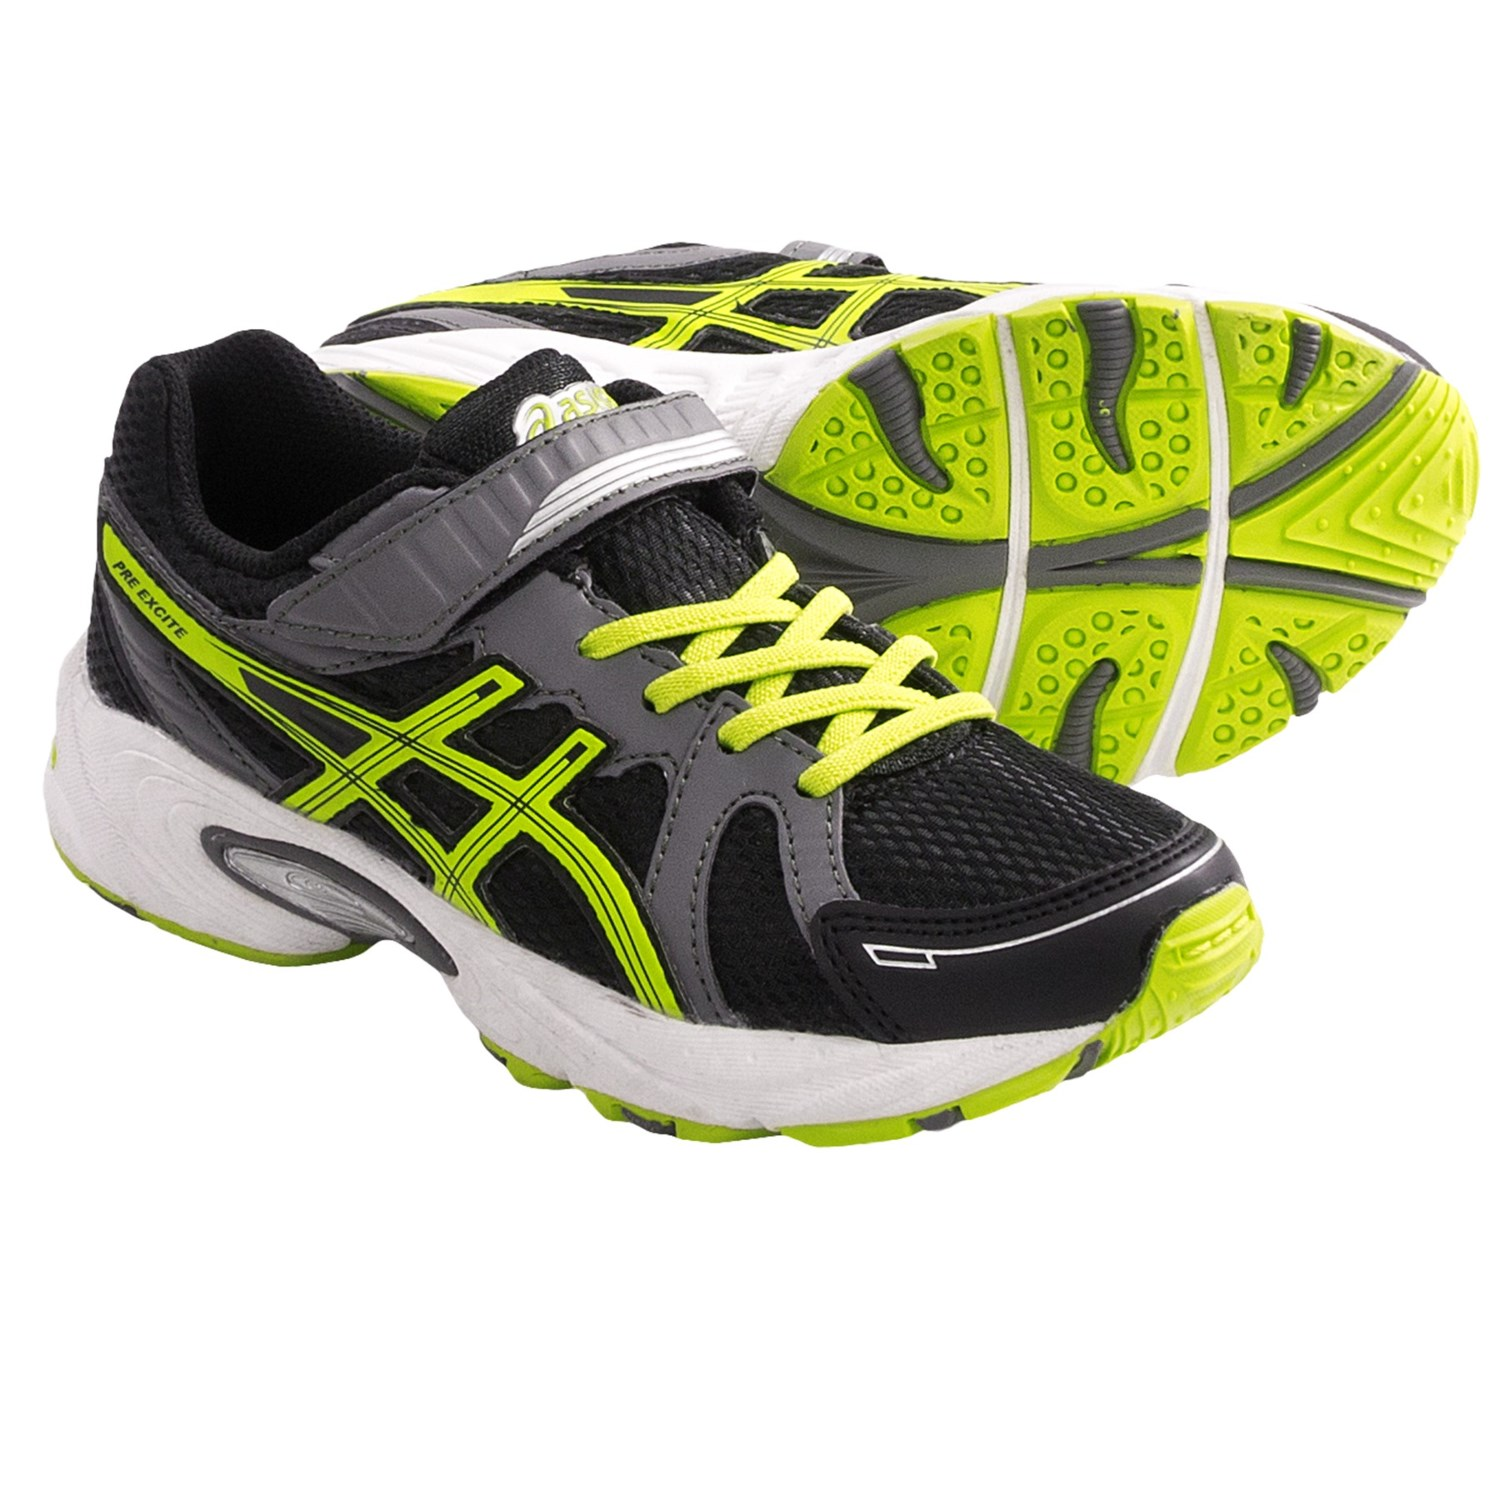 Running shoes for children 28 images new balance kt690 for Get a home plan com